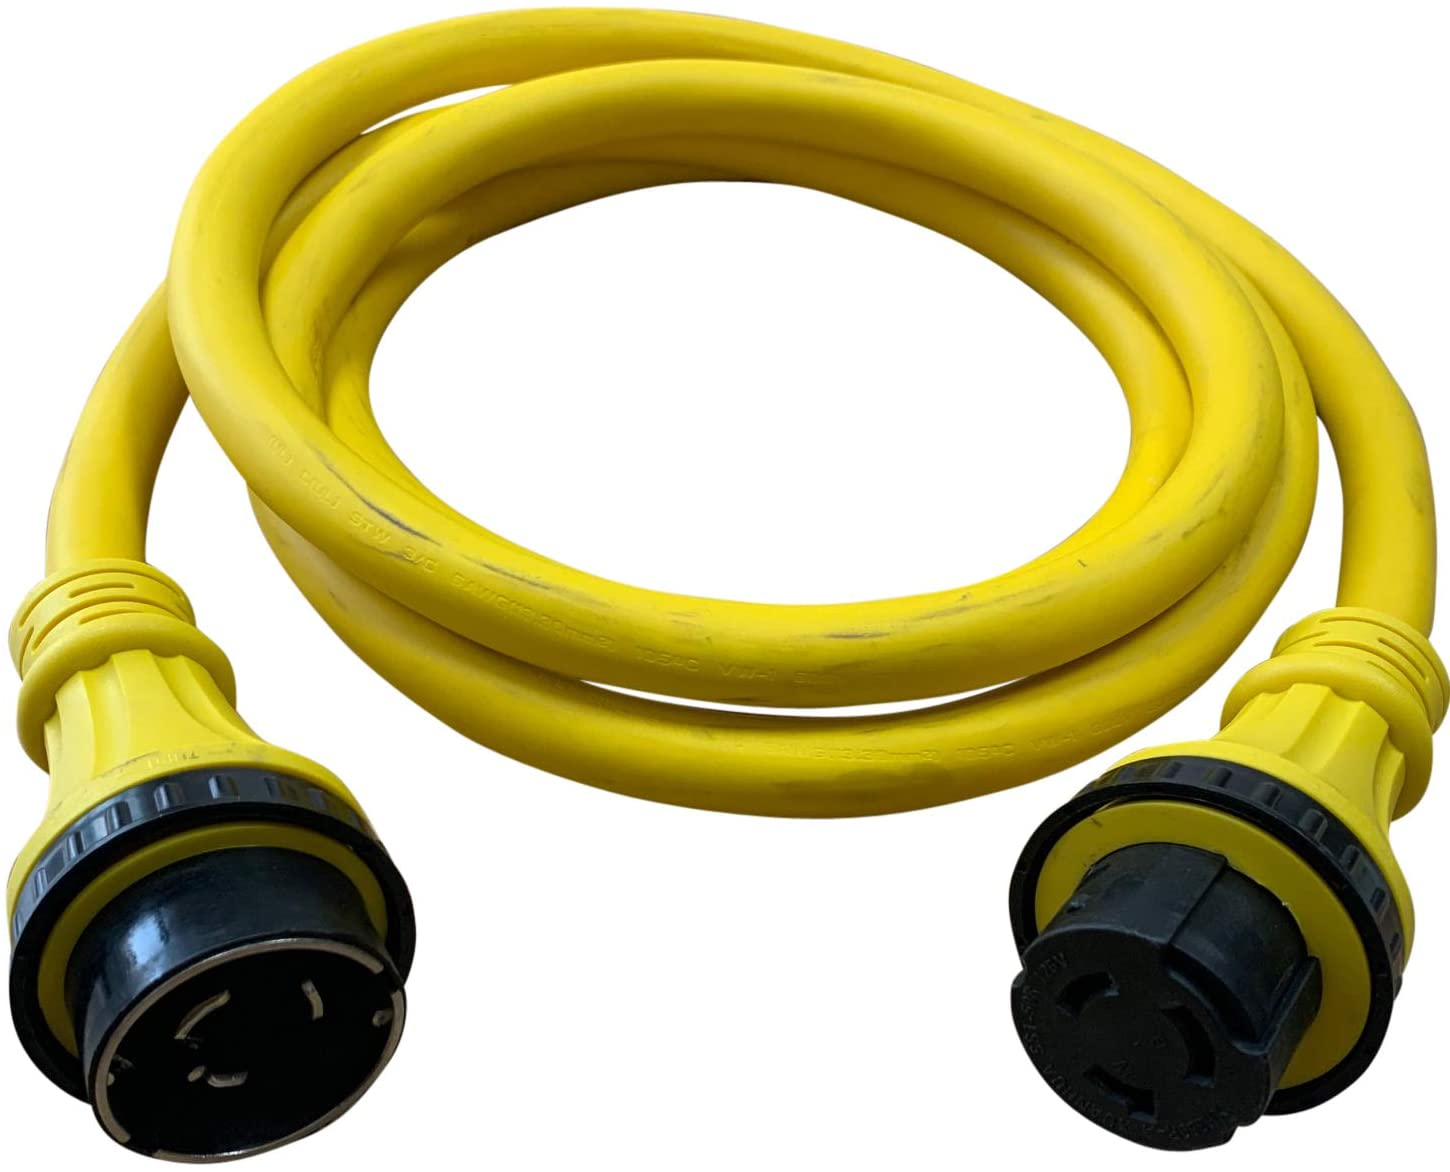 Halex, 51225, 25 FT. Marine Shore Power Extension Cord For Boats, Campers, or RVs, 50 Amp, 125 Volt, 25FT, Yellow